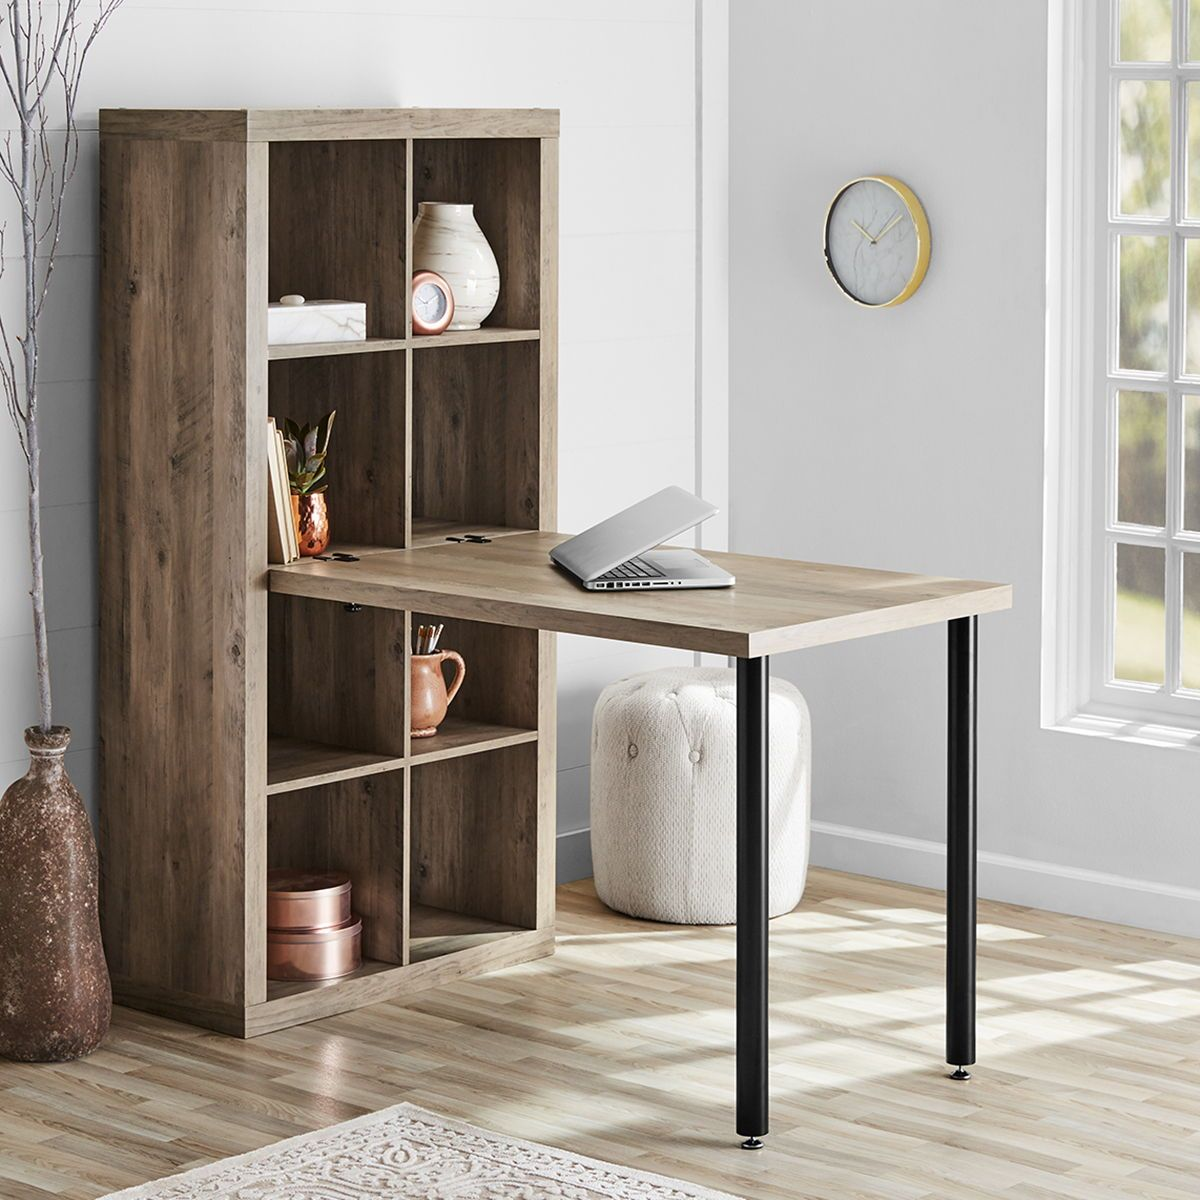 b355ed0a95ede6254719f2dadcb002ed - Better Homes And Gardens Cube Organizer Work Station